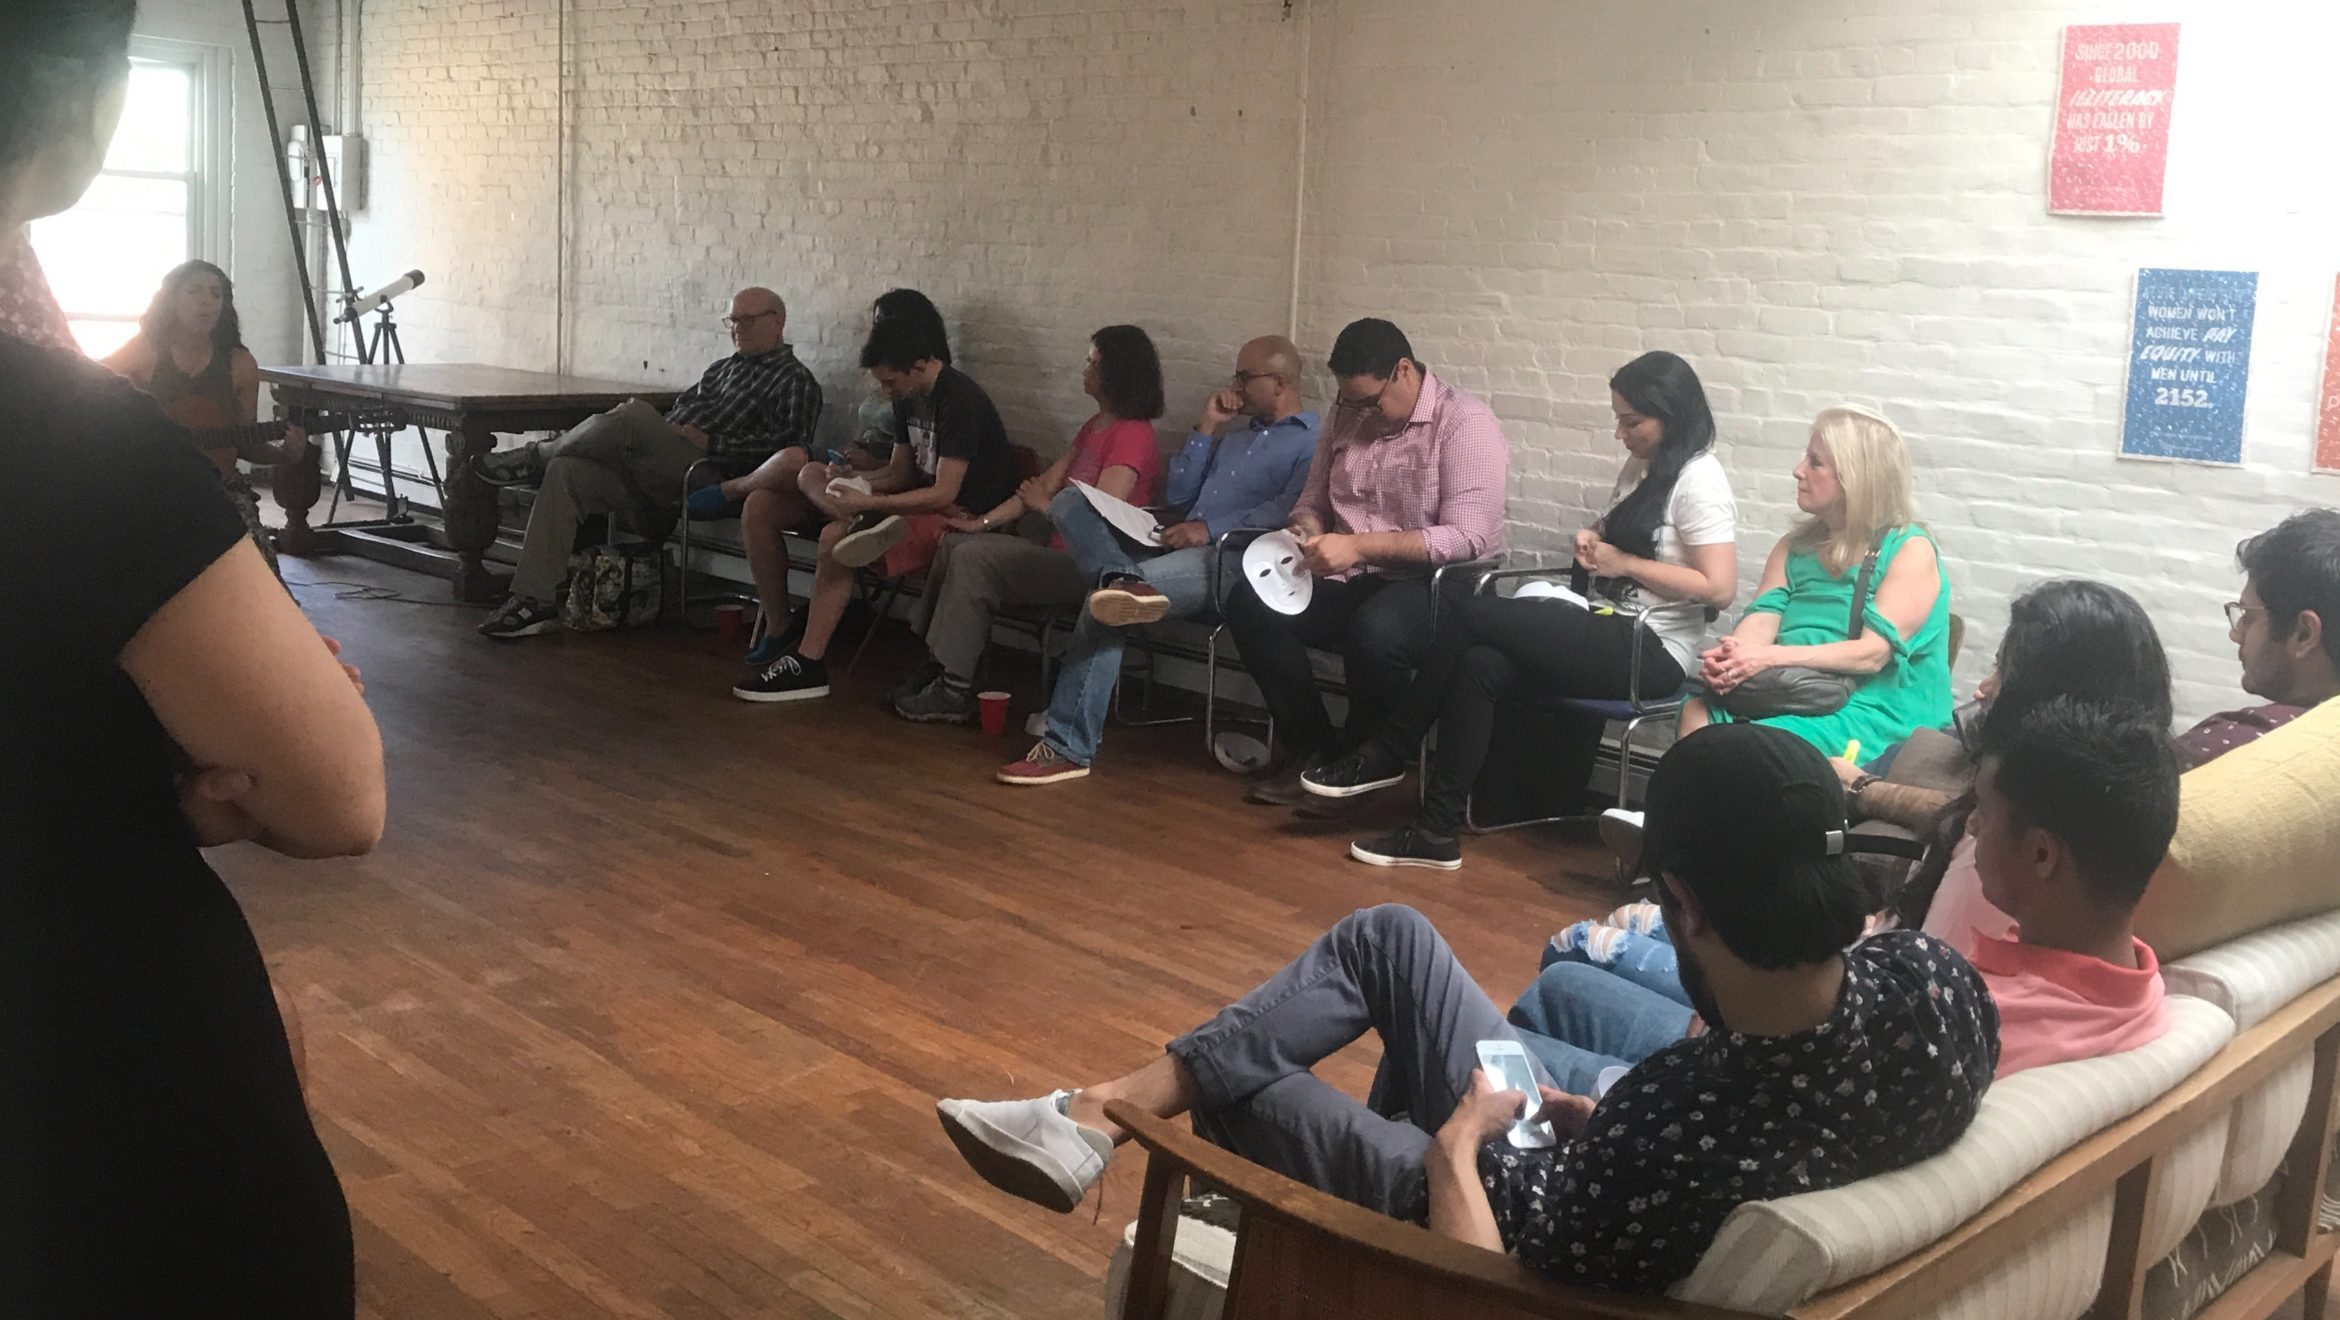 THE STORYTELLING SHOWCASE THAT PROFILES THE LONGING OF IMMIGRANTS